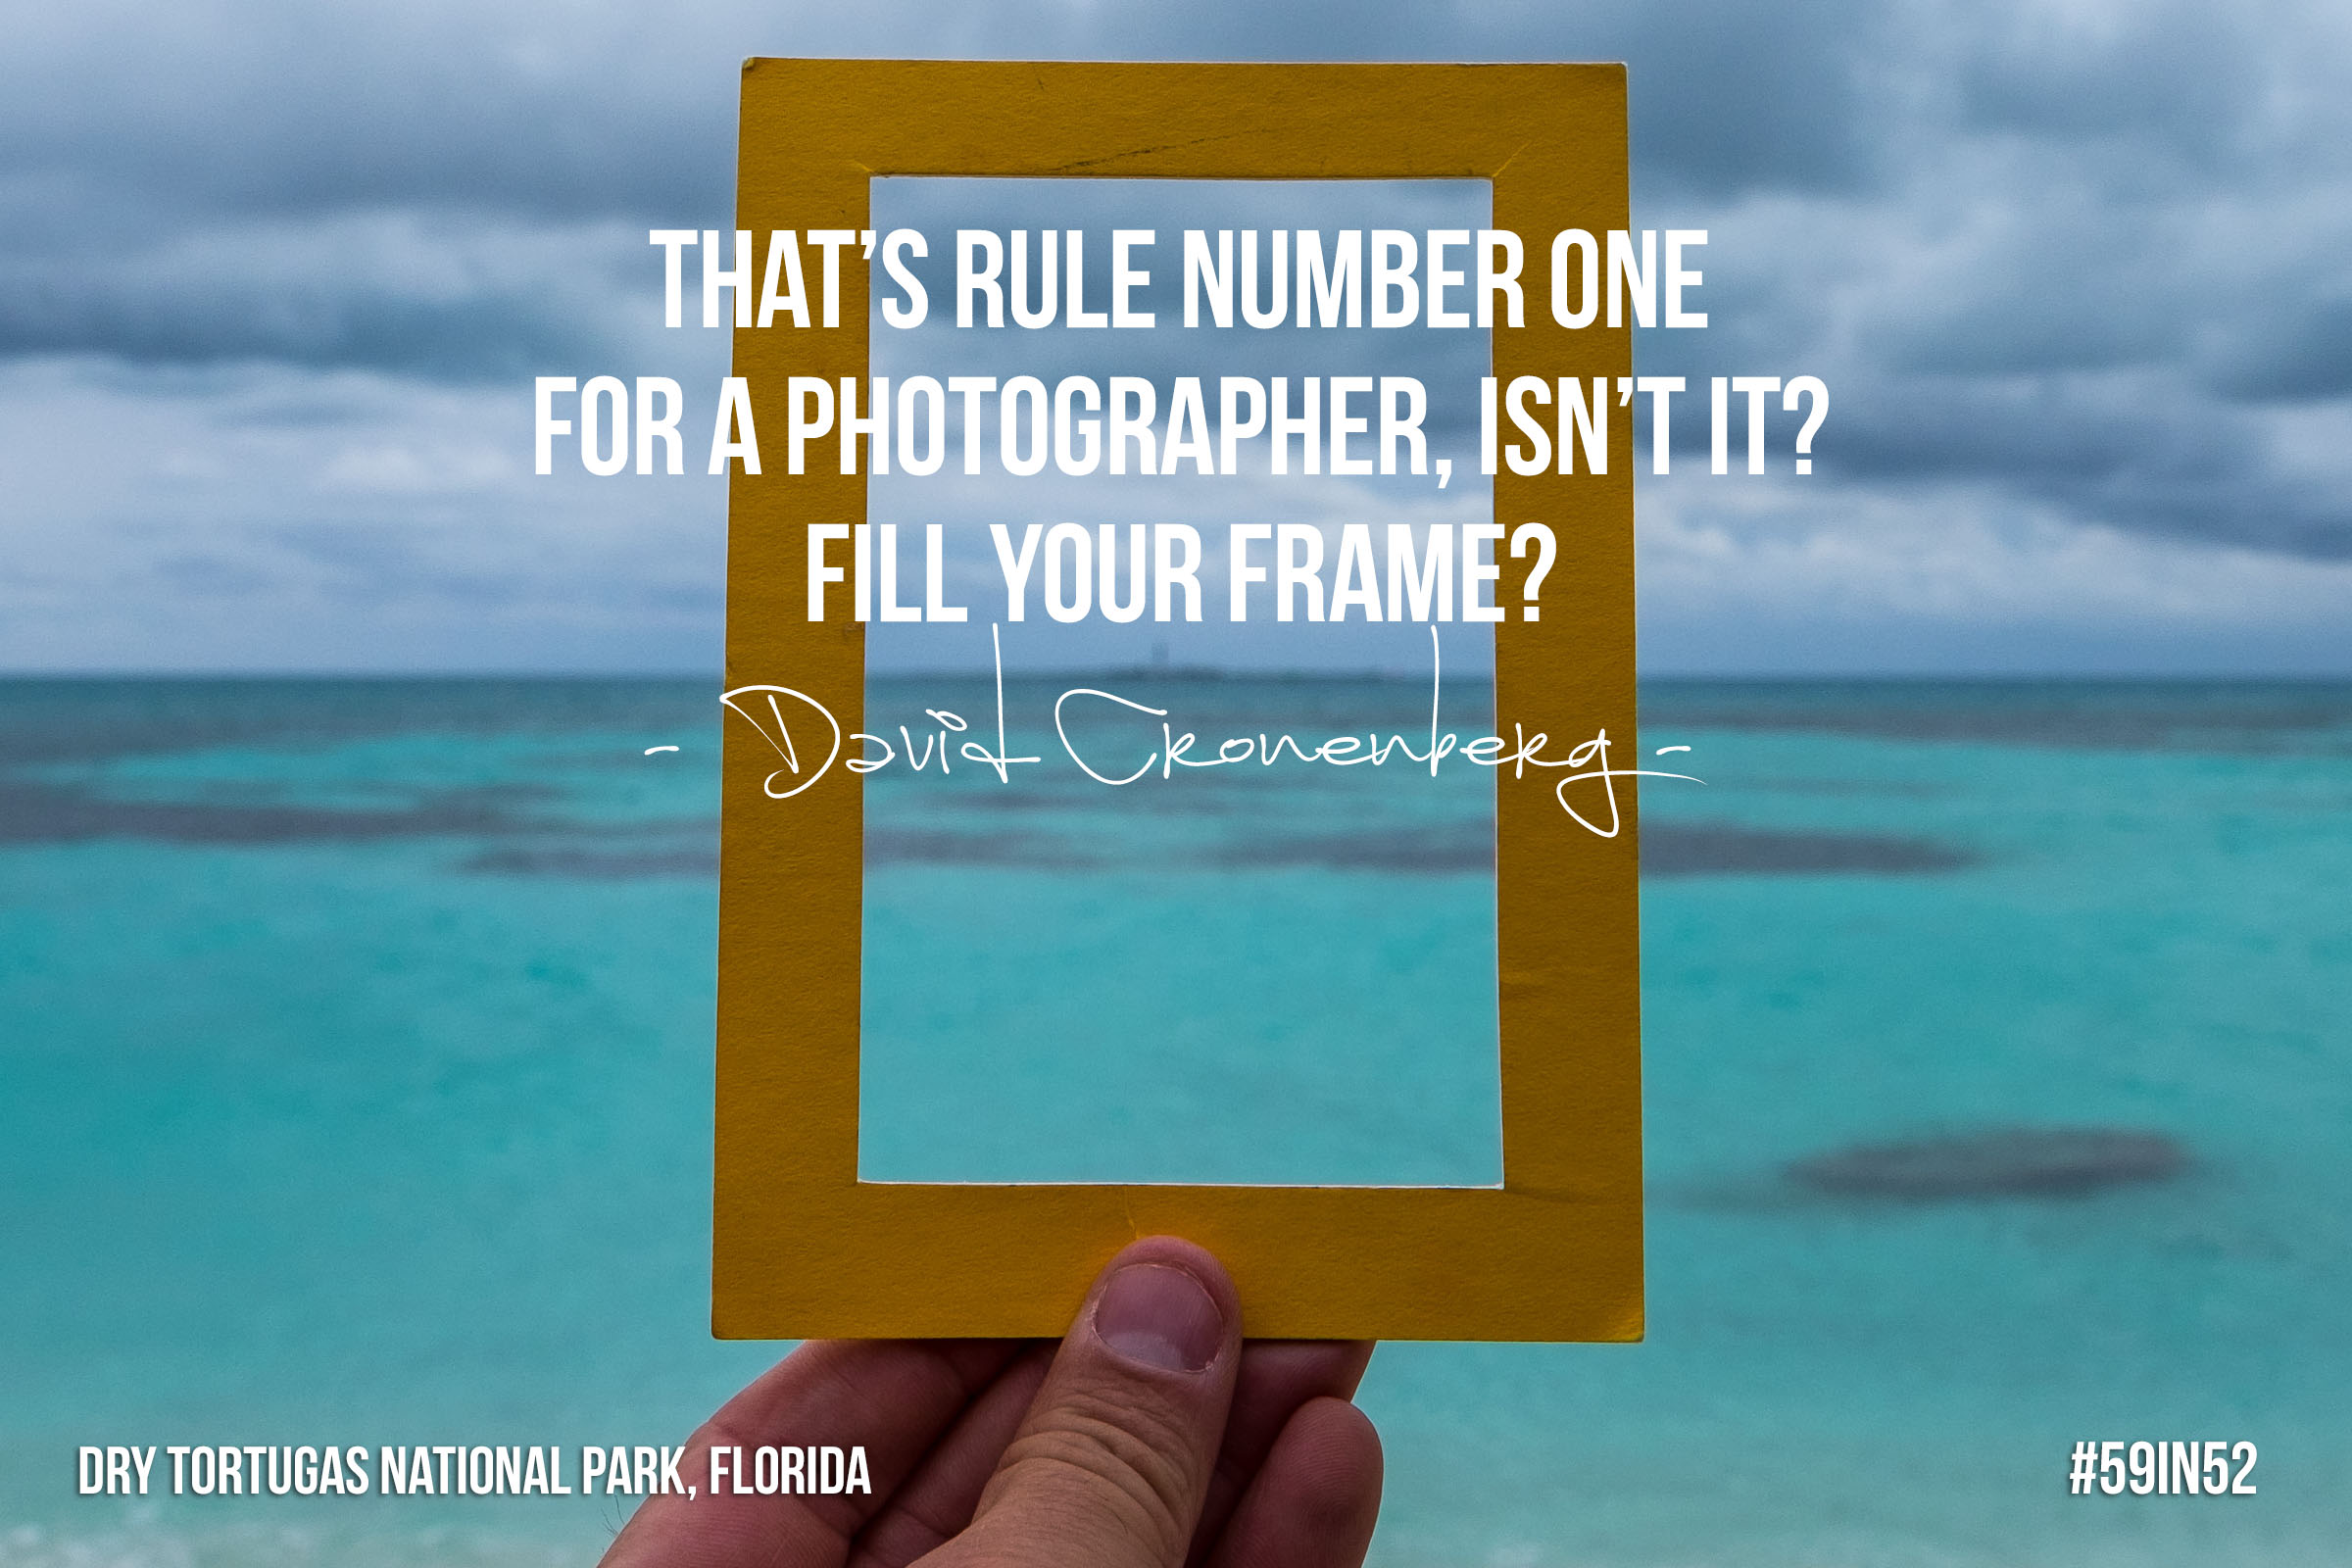 """That's rule number one for a photographer  , isn't it? Fill your frame?"" - David Cronenberg"